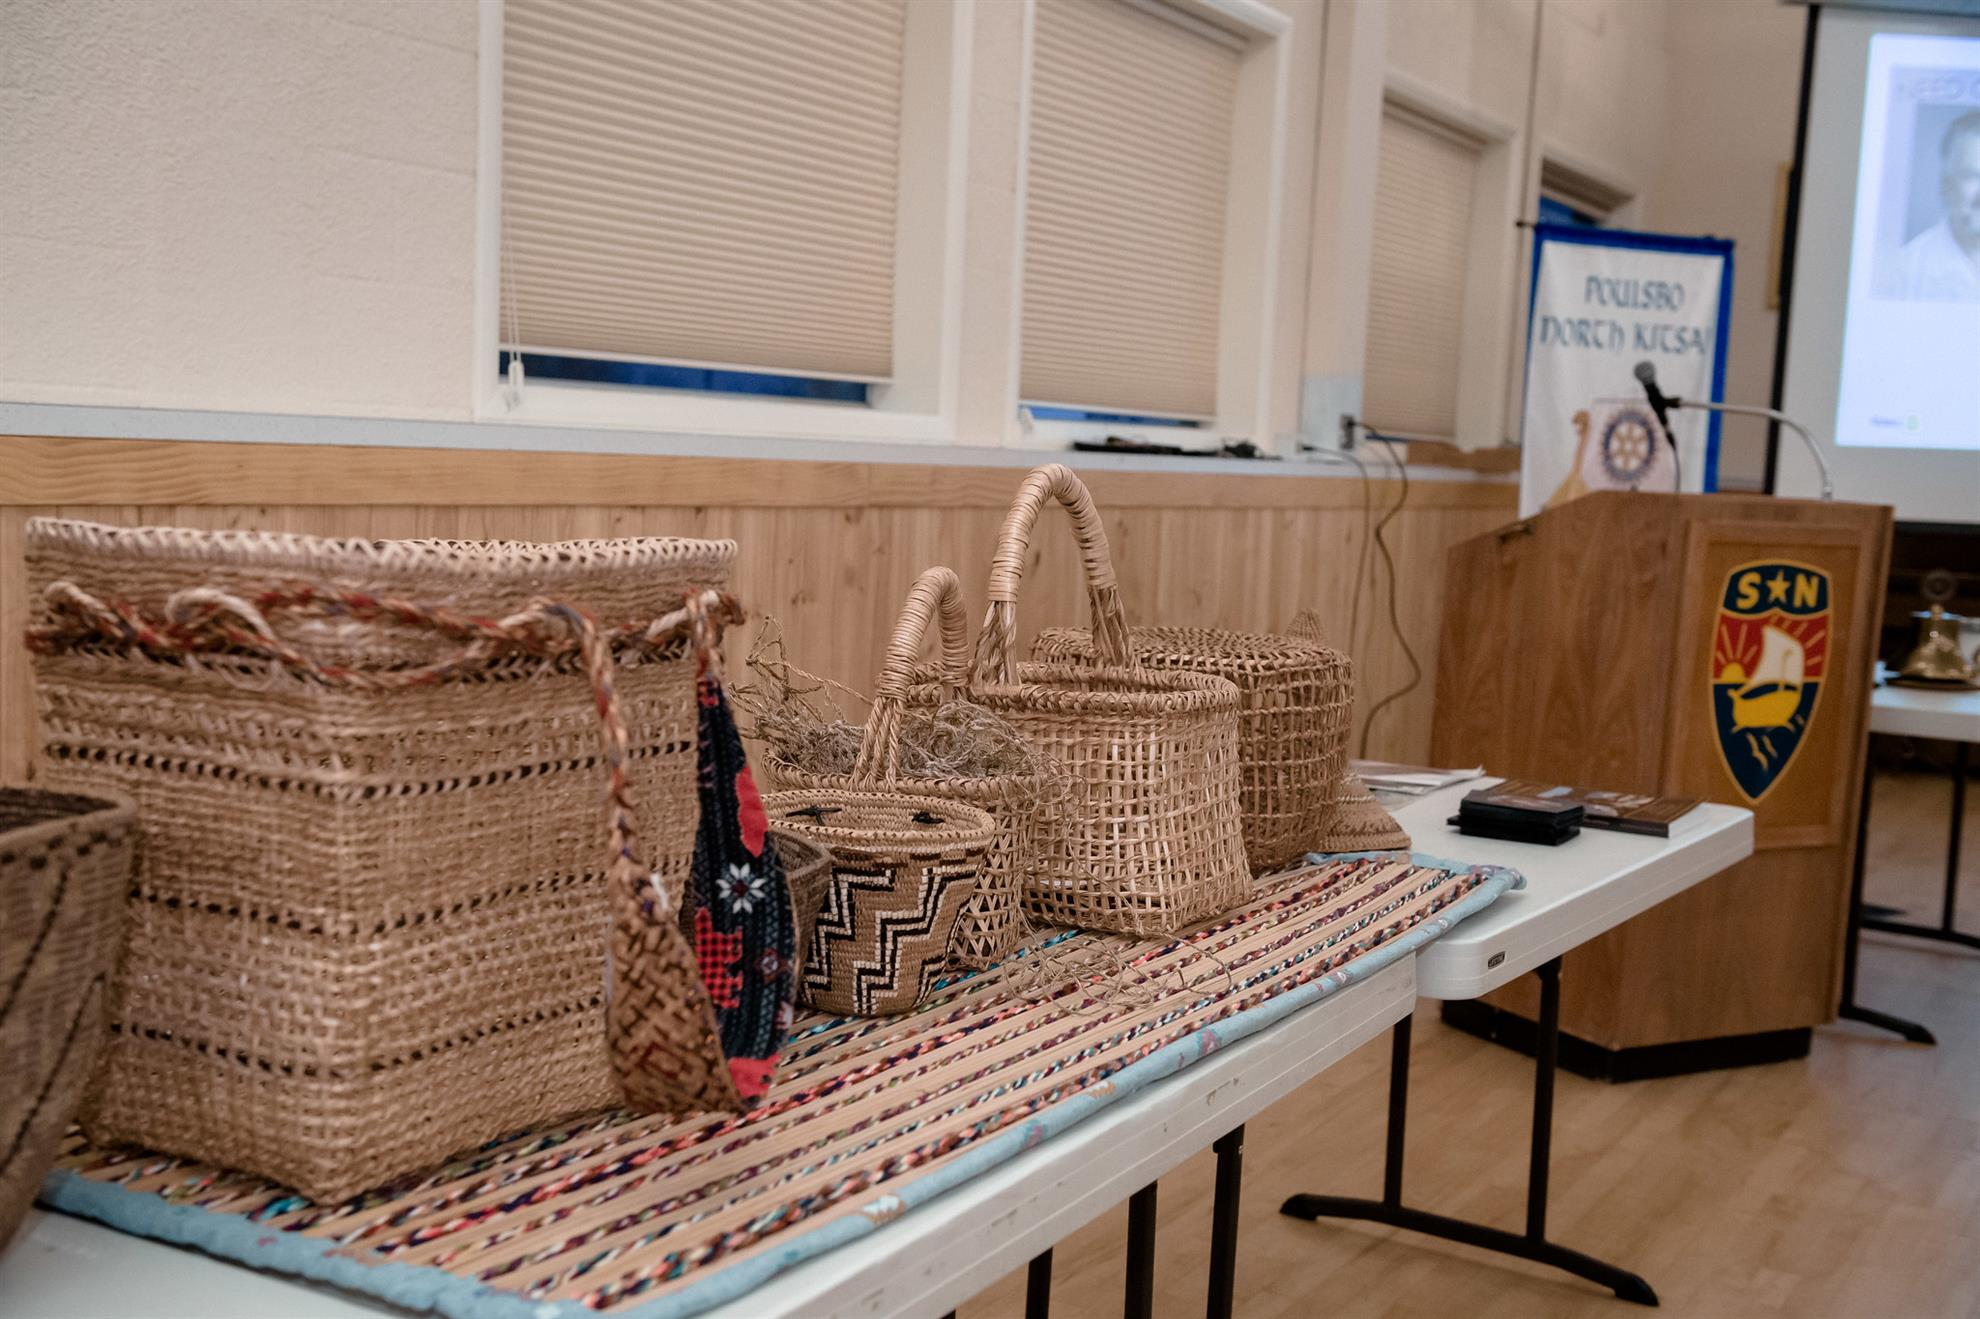 Examples of baskets